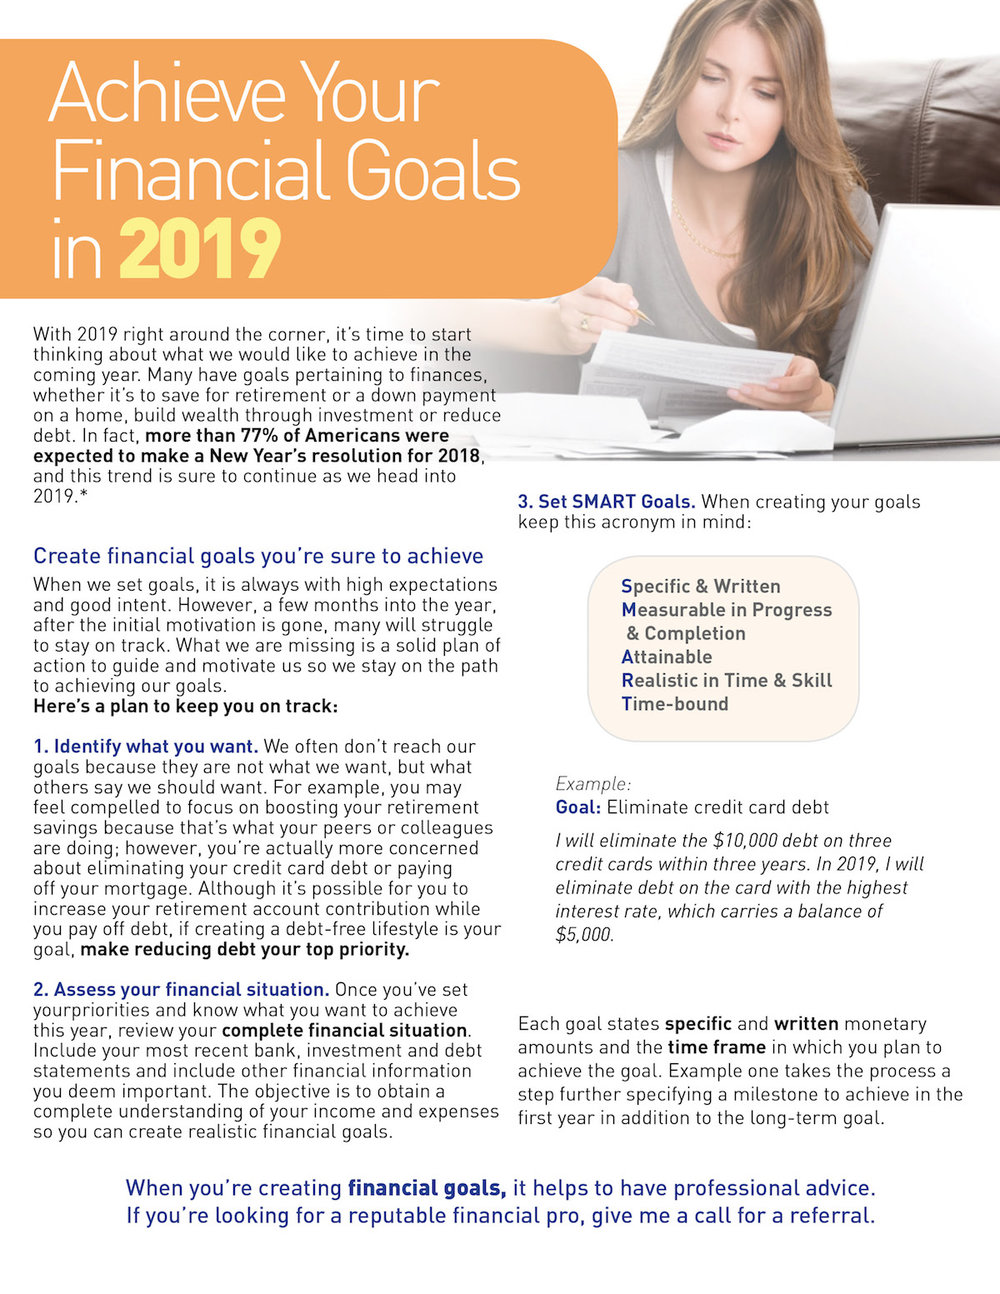 How to Achieve Your Financial Goals in 2019 - Pier to Pier Brokers